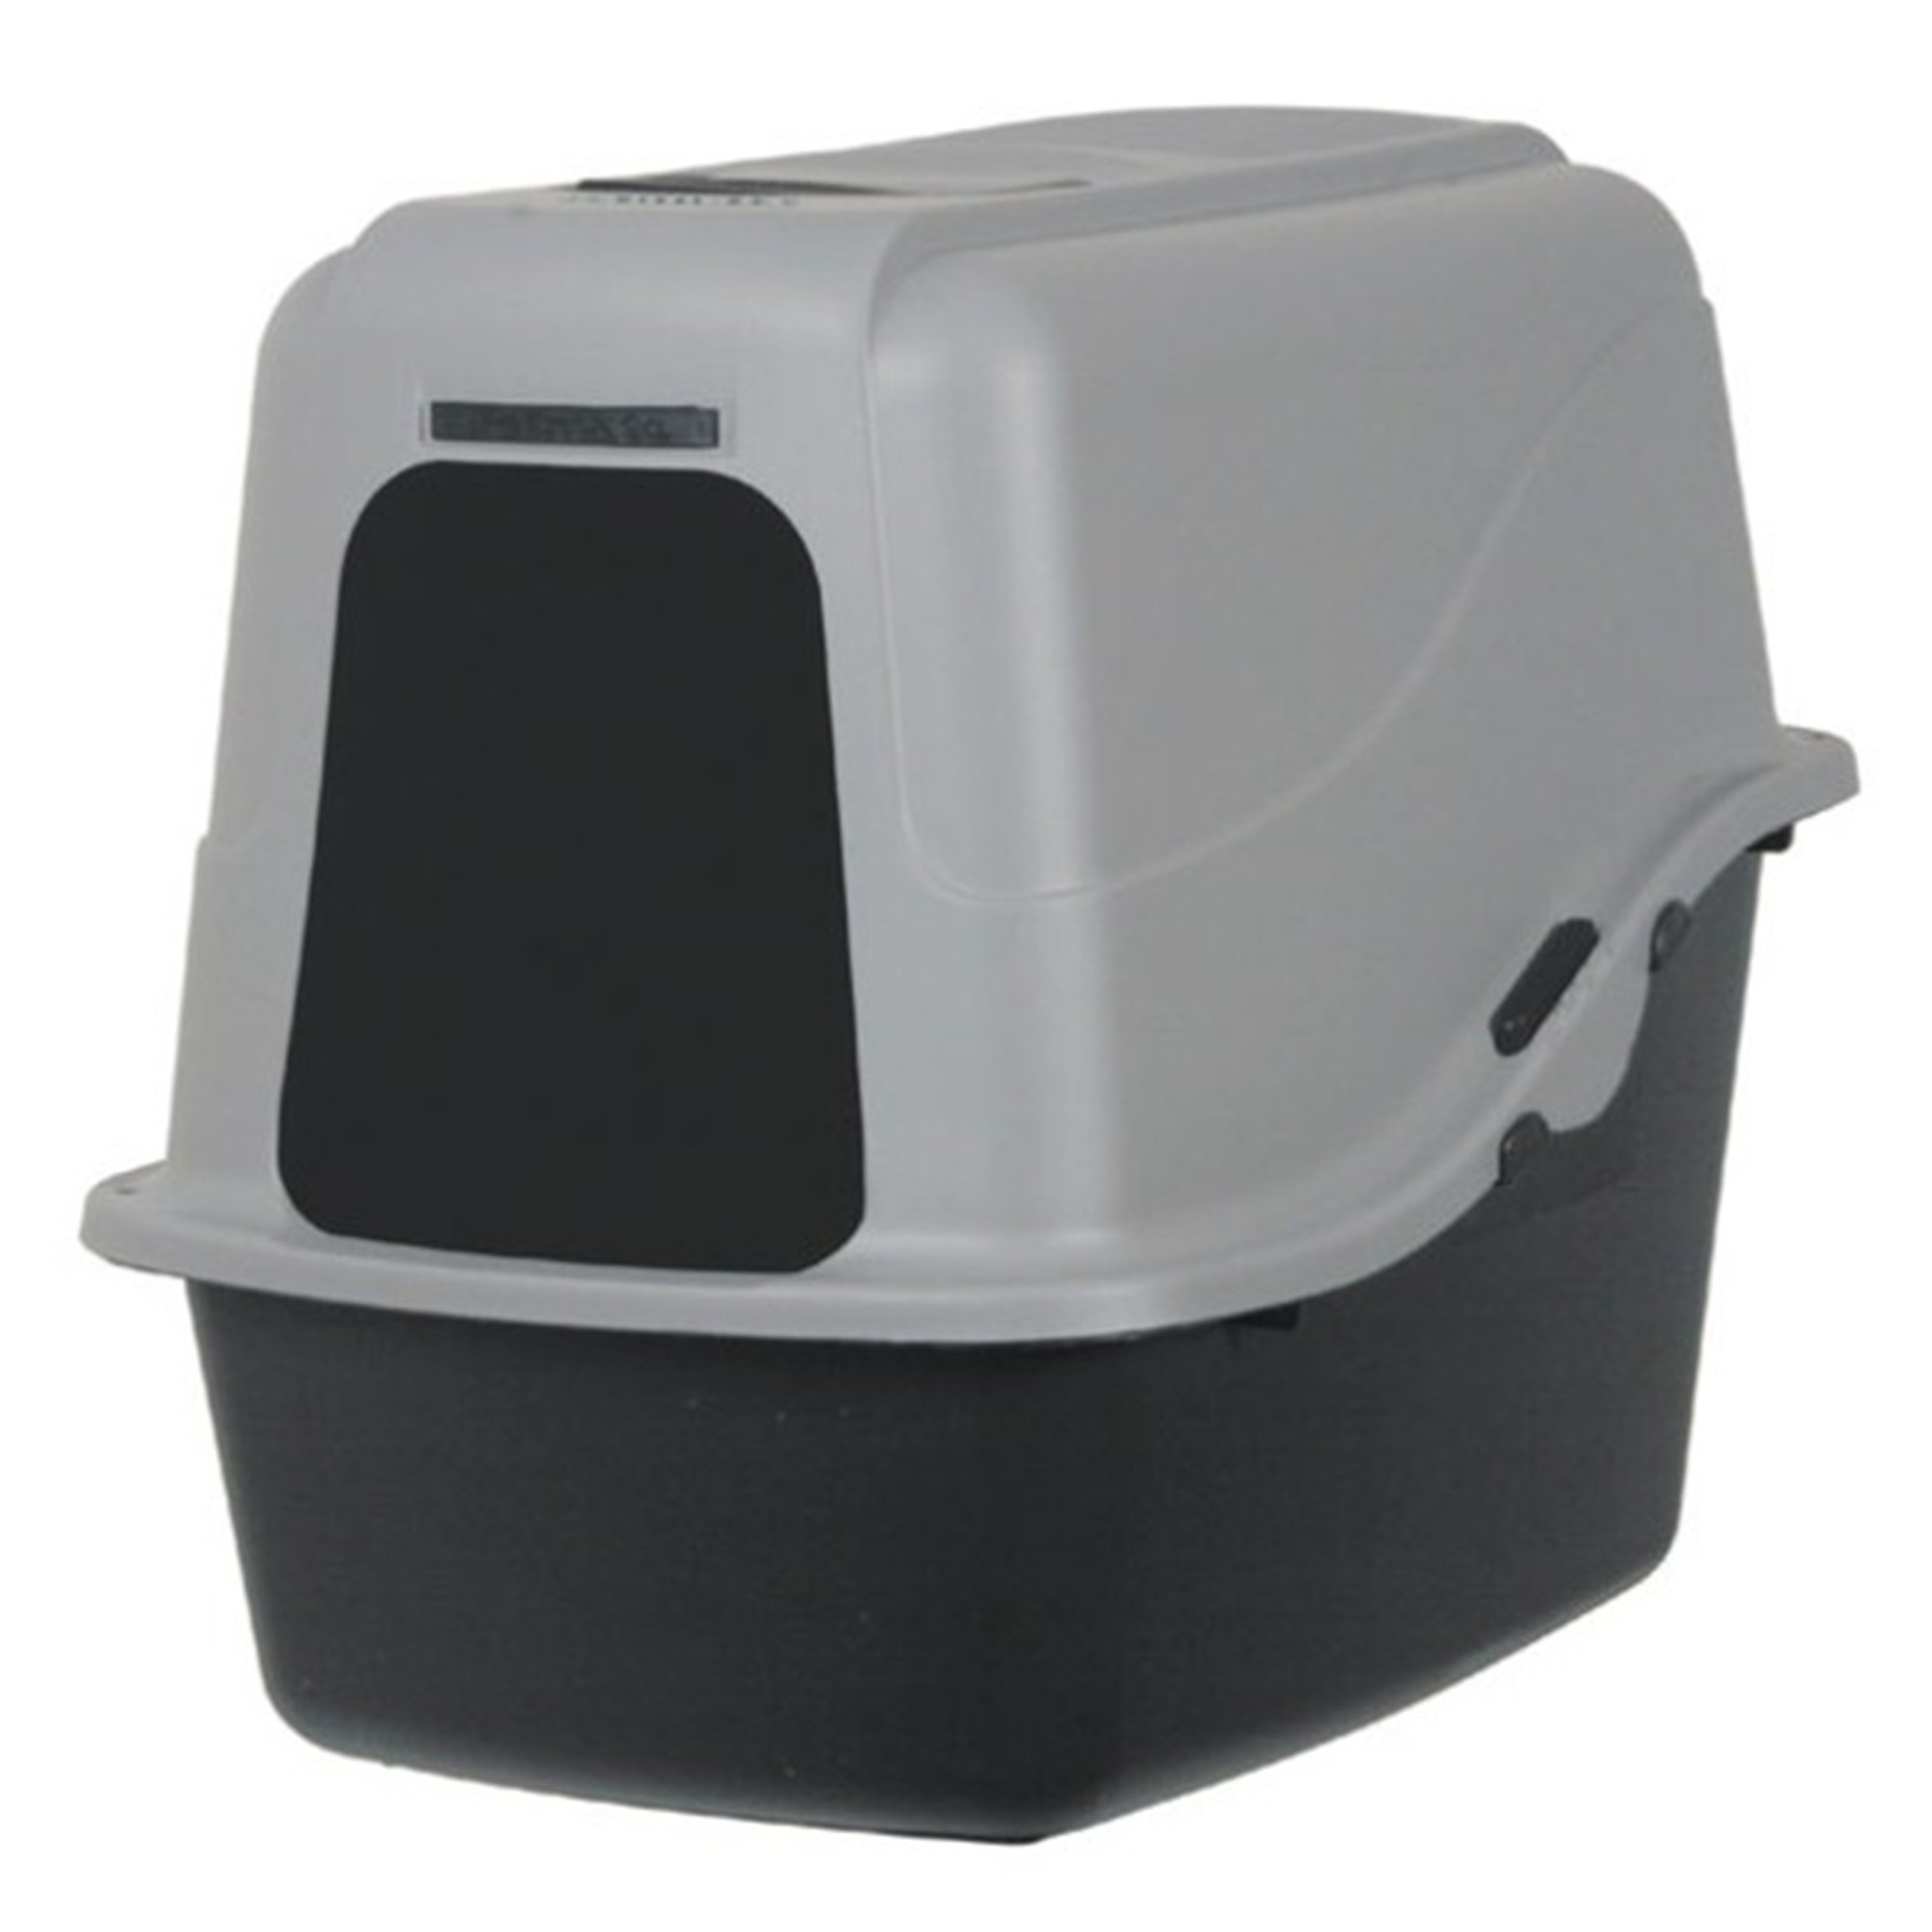 Petmate black hooded litter pan with mircoban petco for Dog litter box petco